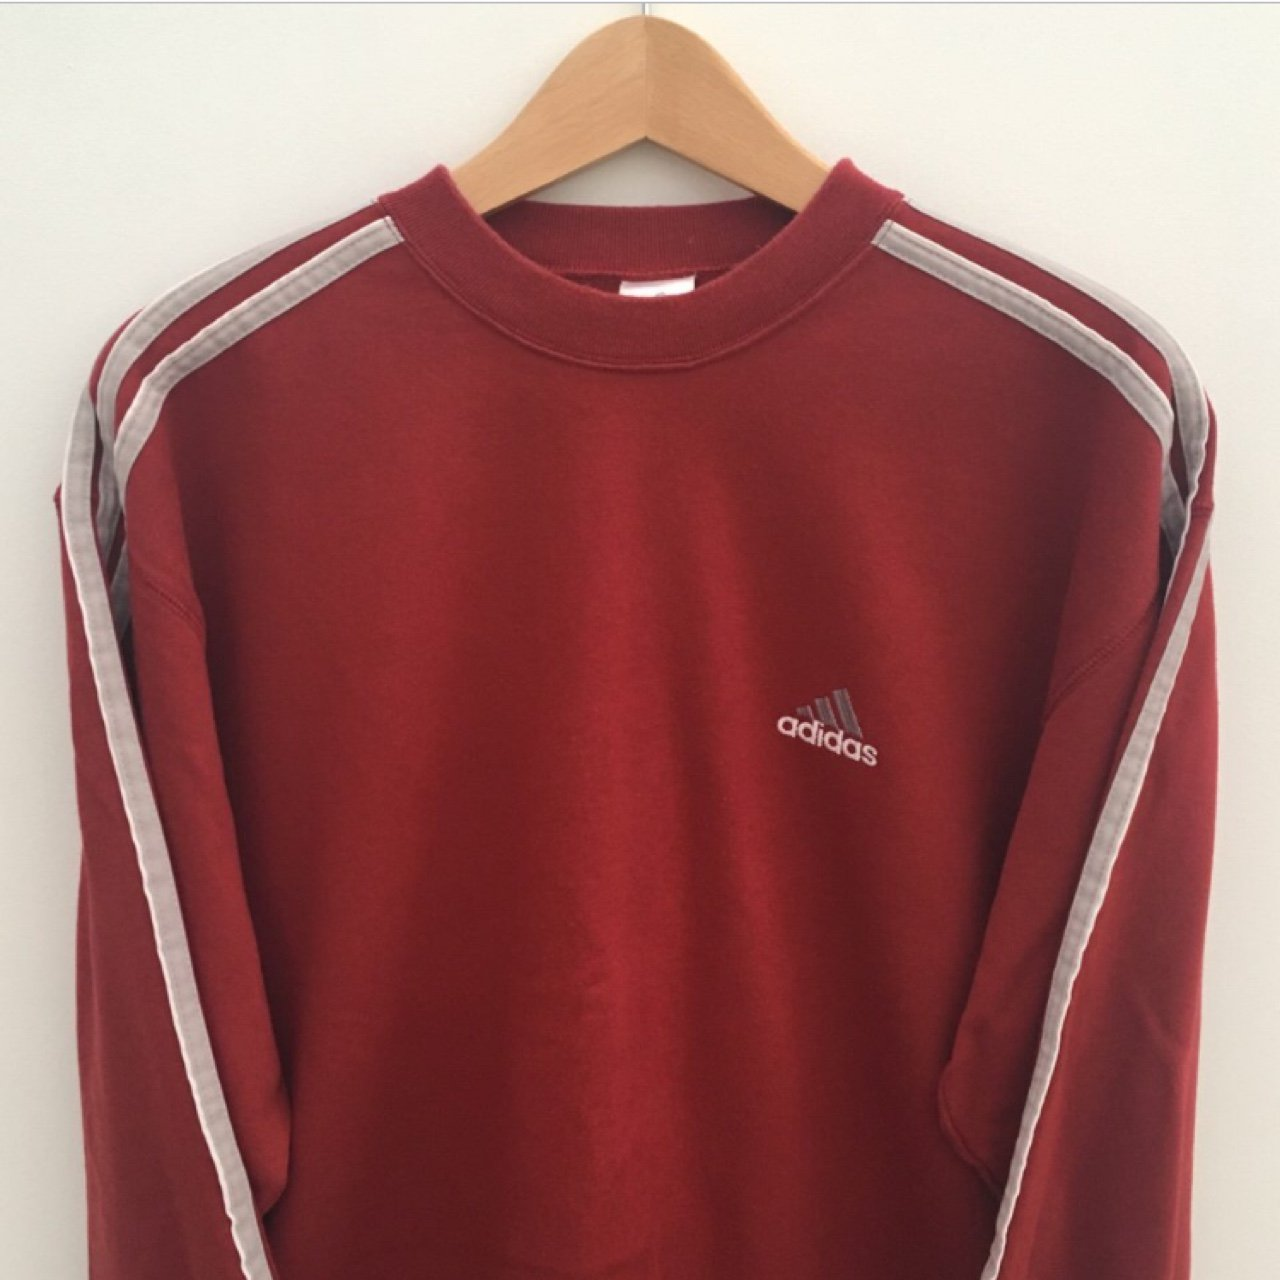 bea035c59 Condition Depop Size Adidas Medium Vintage Sweater amp; Great Cwt0Tq